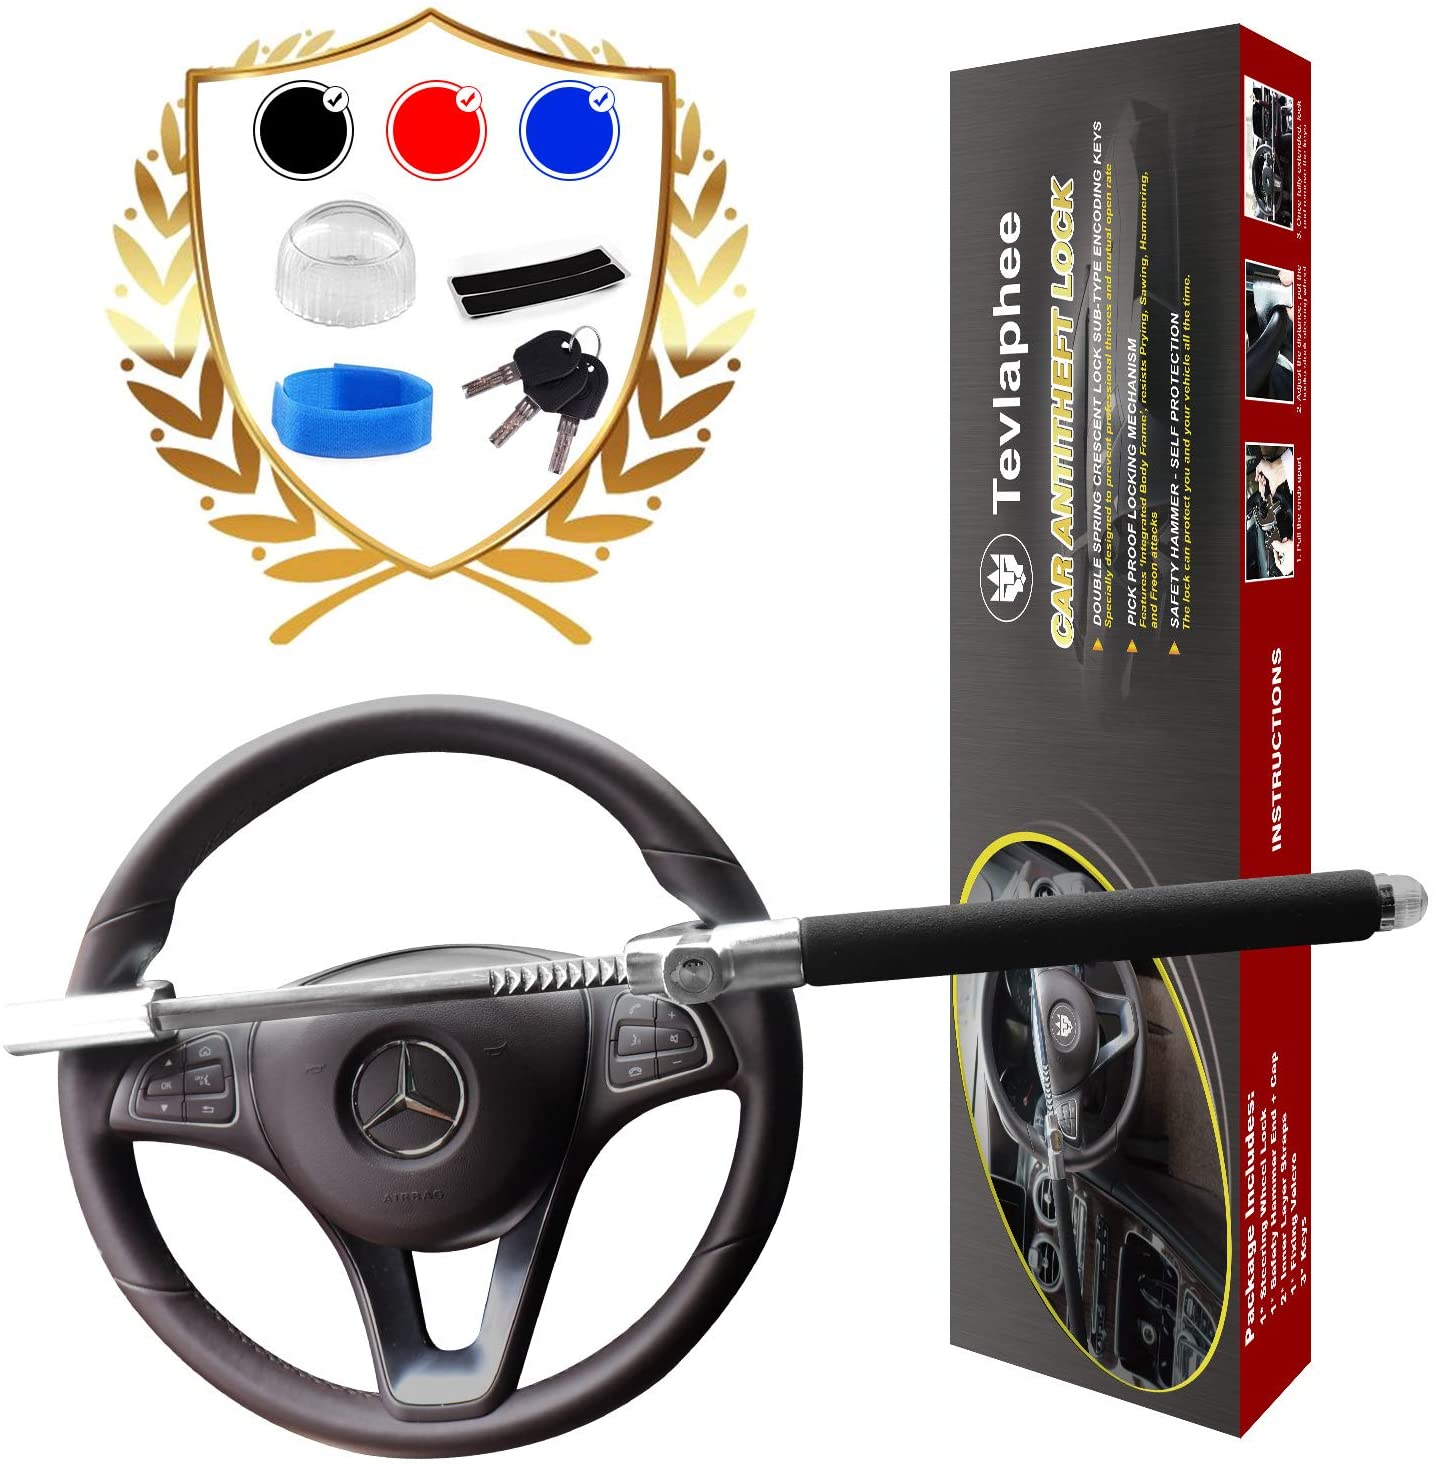 Tevlaphee Steering Wheel Lock For Cars